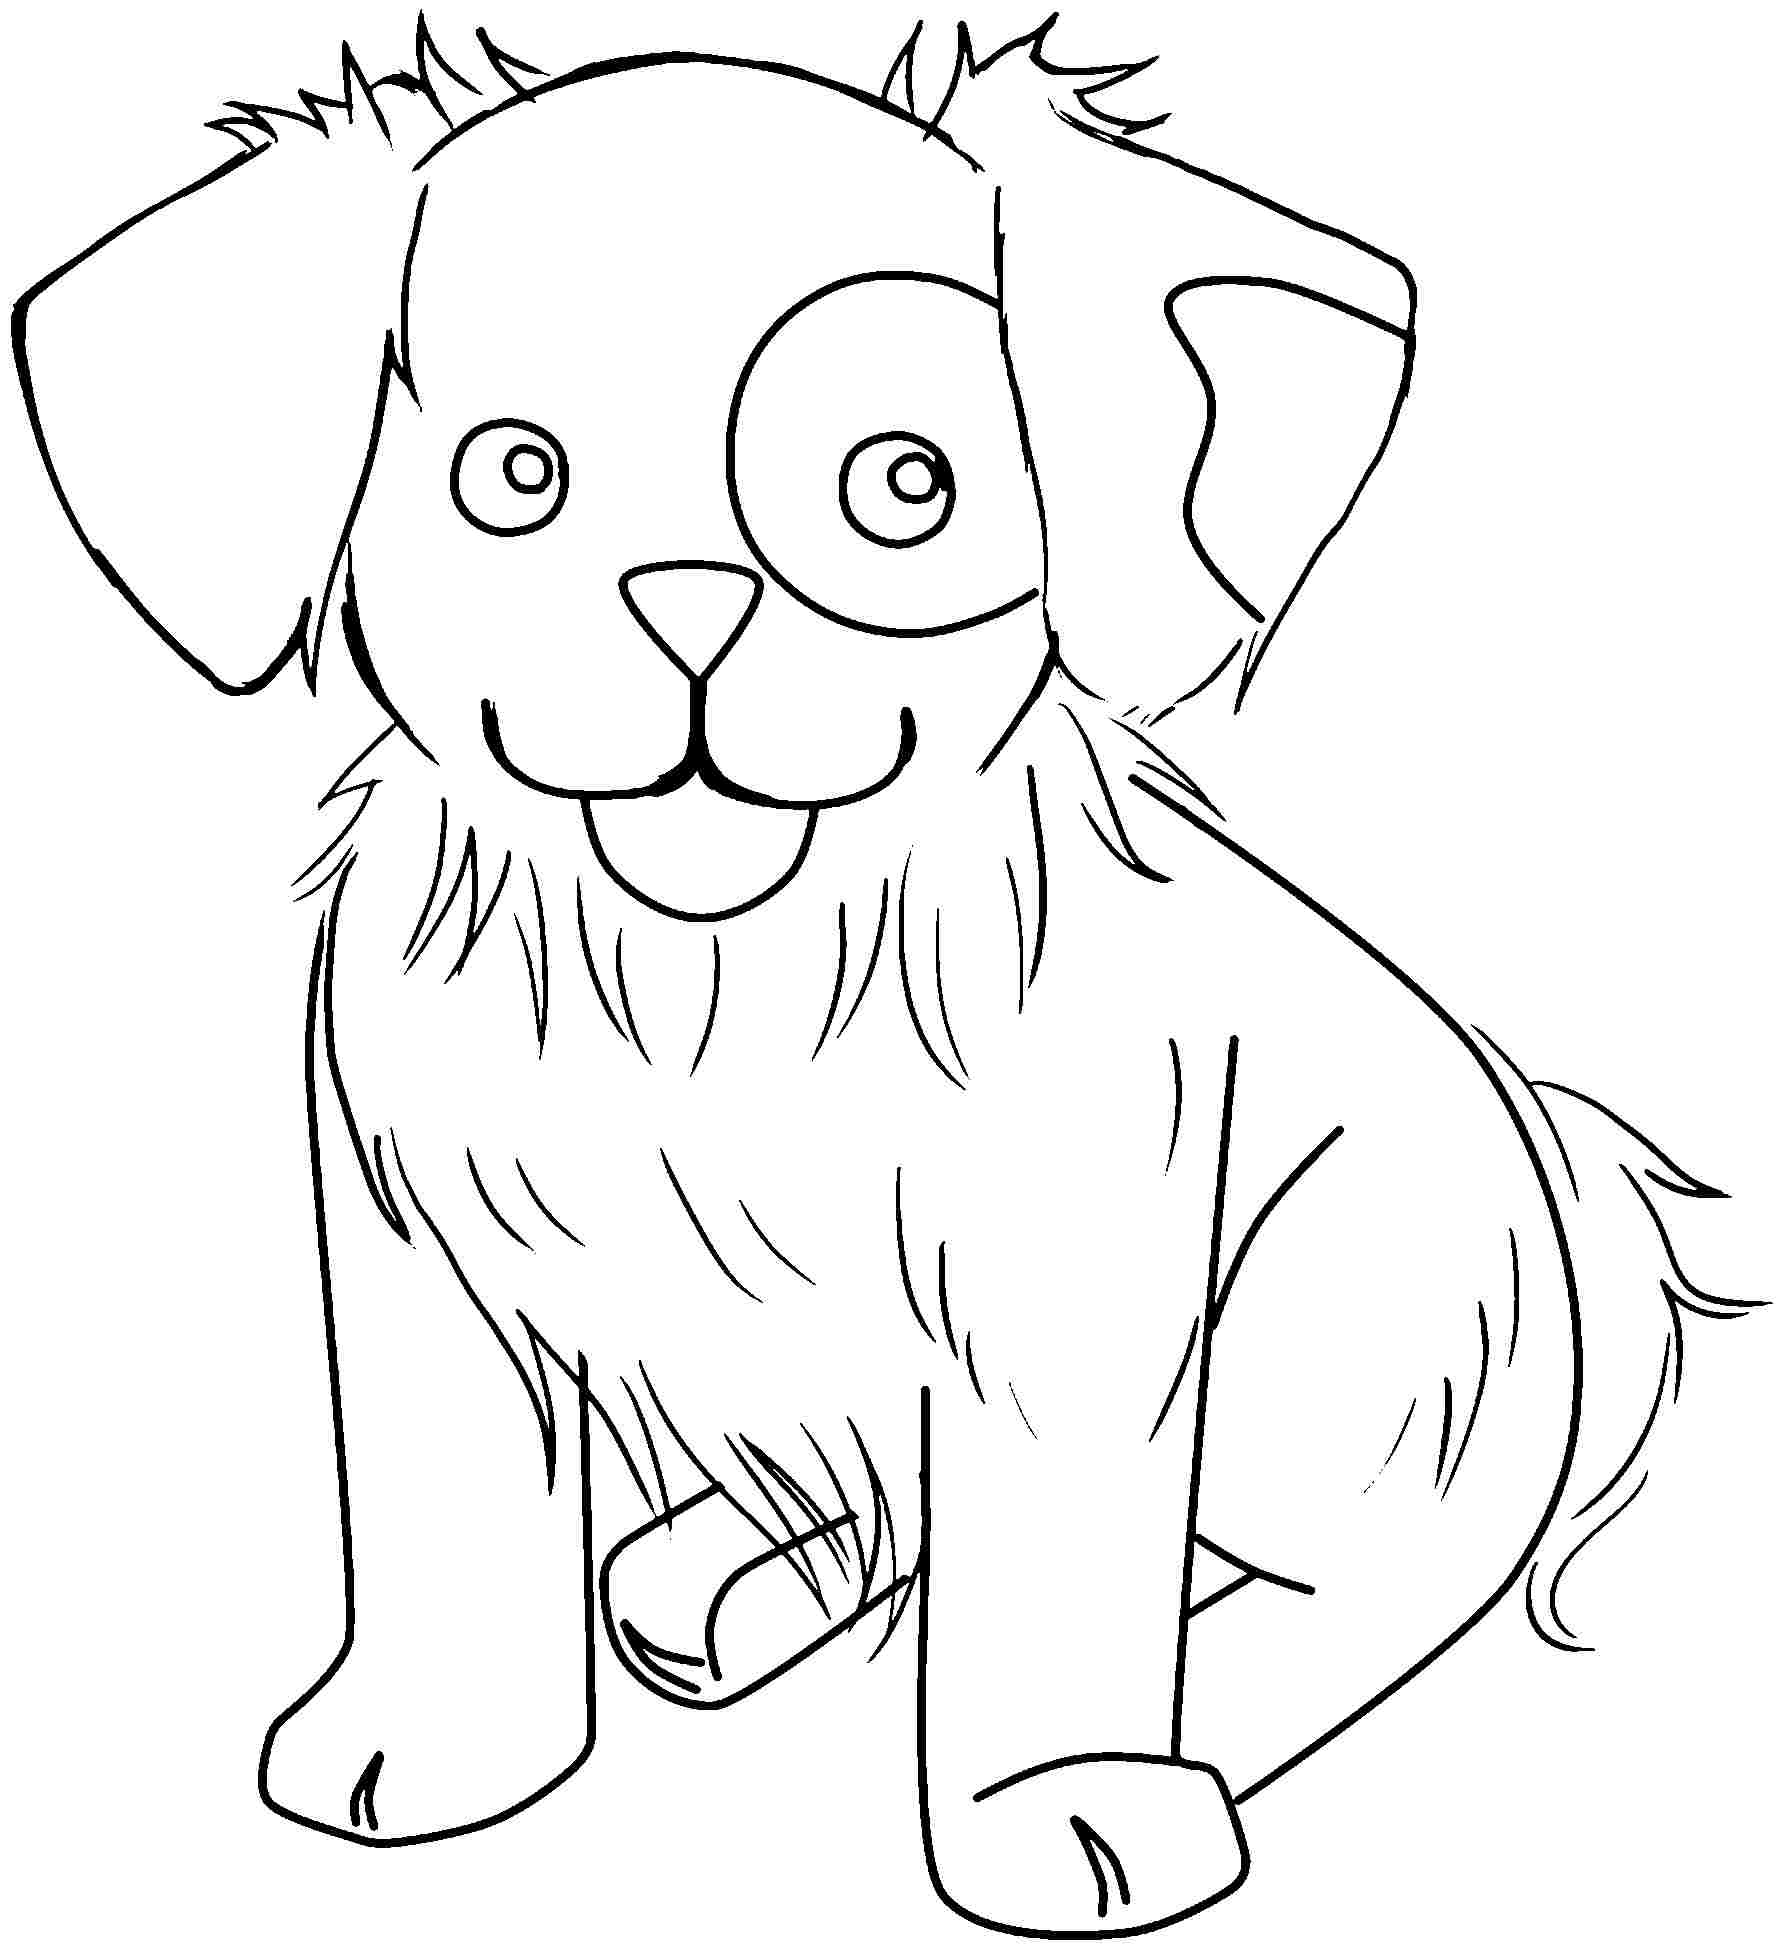 Free Printable Cute Animal Coloring Pages